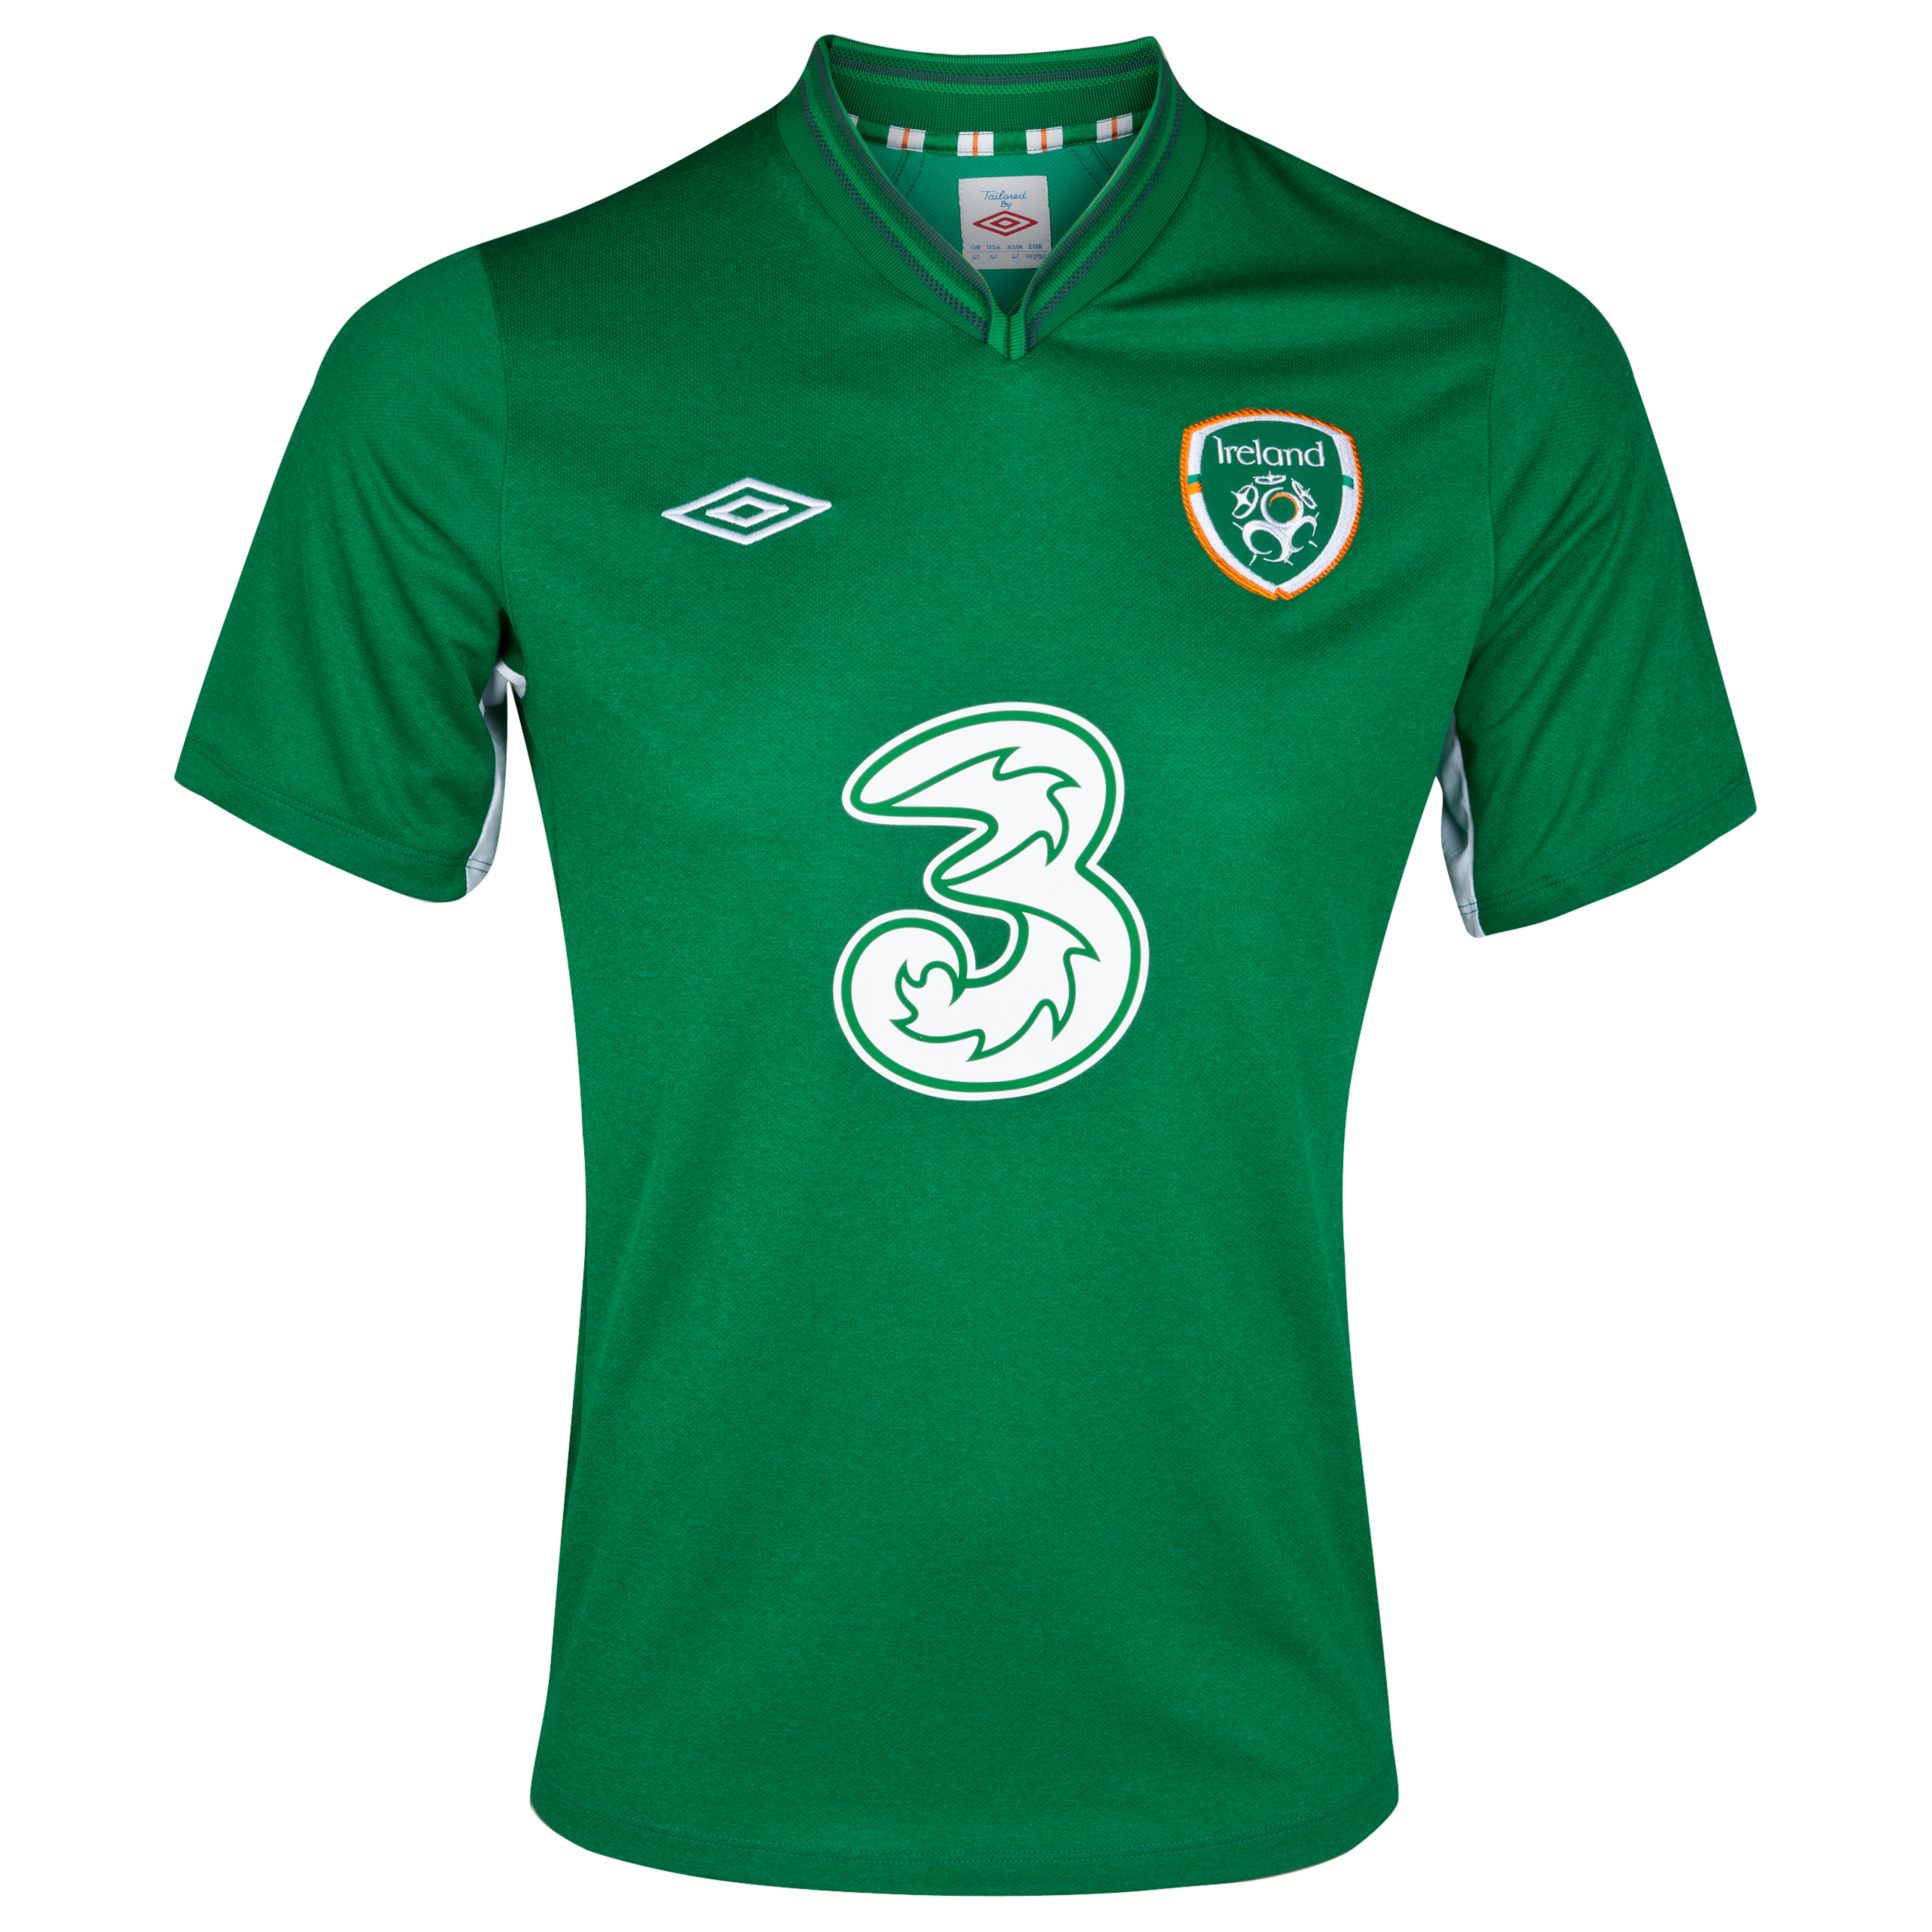 Republic Of Ireland Home Shirt 2012/13 - Boys